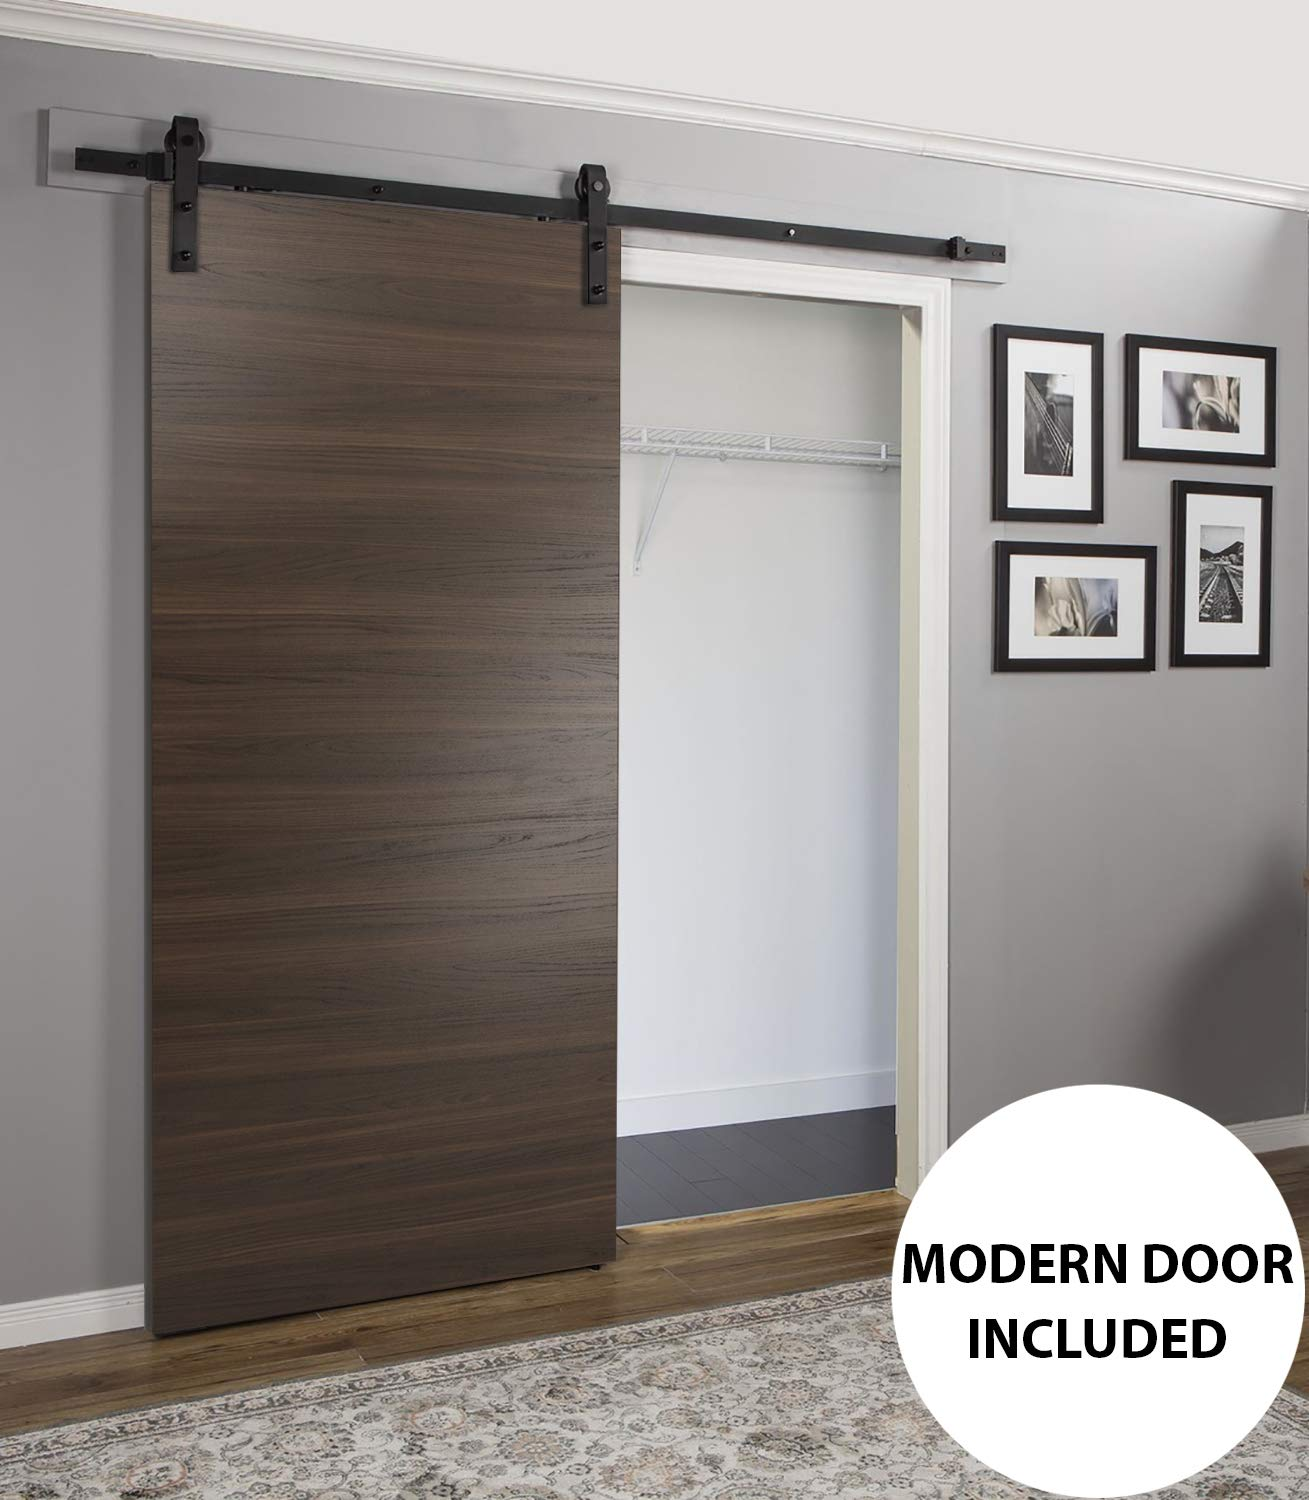 Wood barn door 32 x 80 inches with rail 6 6ft planum 0010 chocolate ash pre drilled rail hangers floor guide closet door solid core modern interior